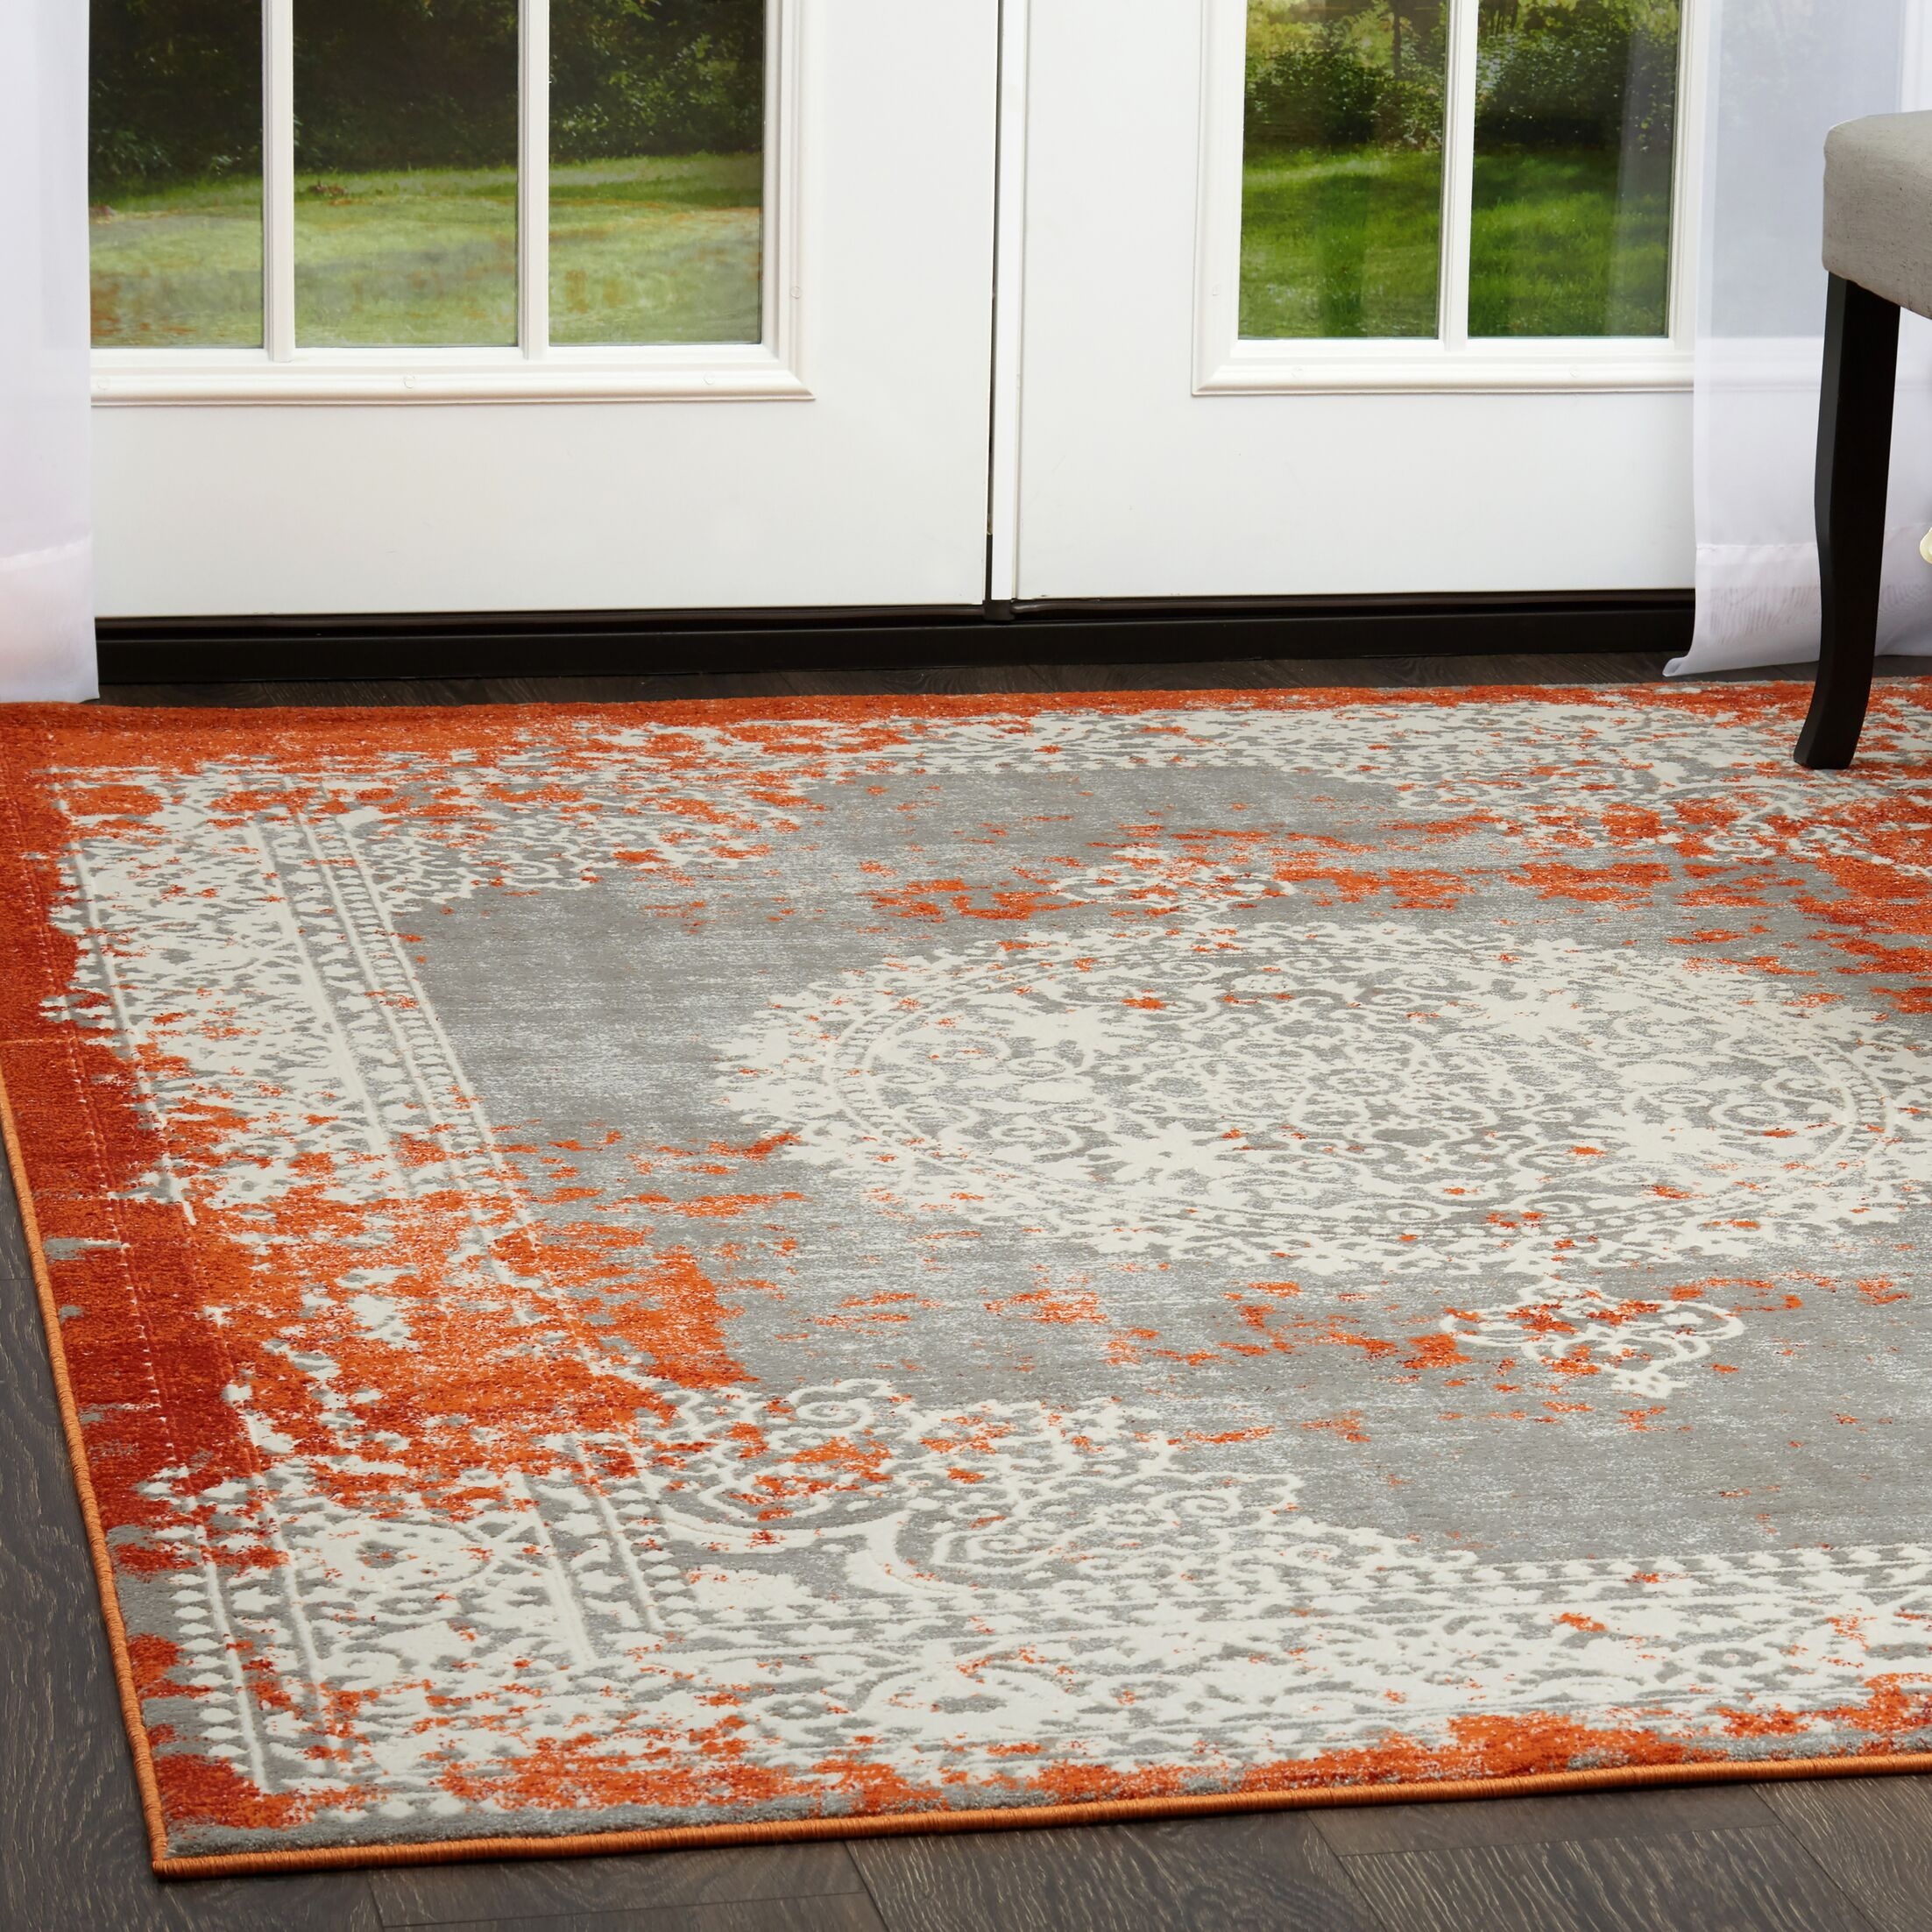 Gidley Gray/Terracotta Area Rug Rug Size: Rectangle 2'7